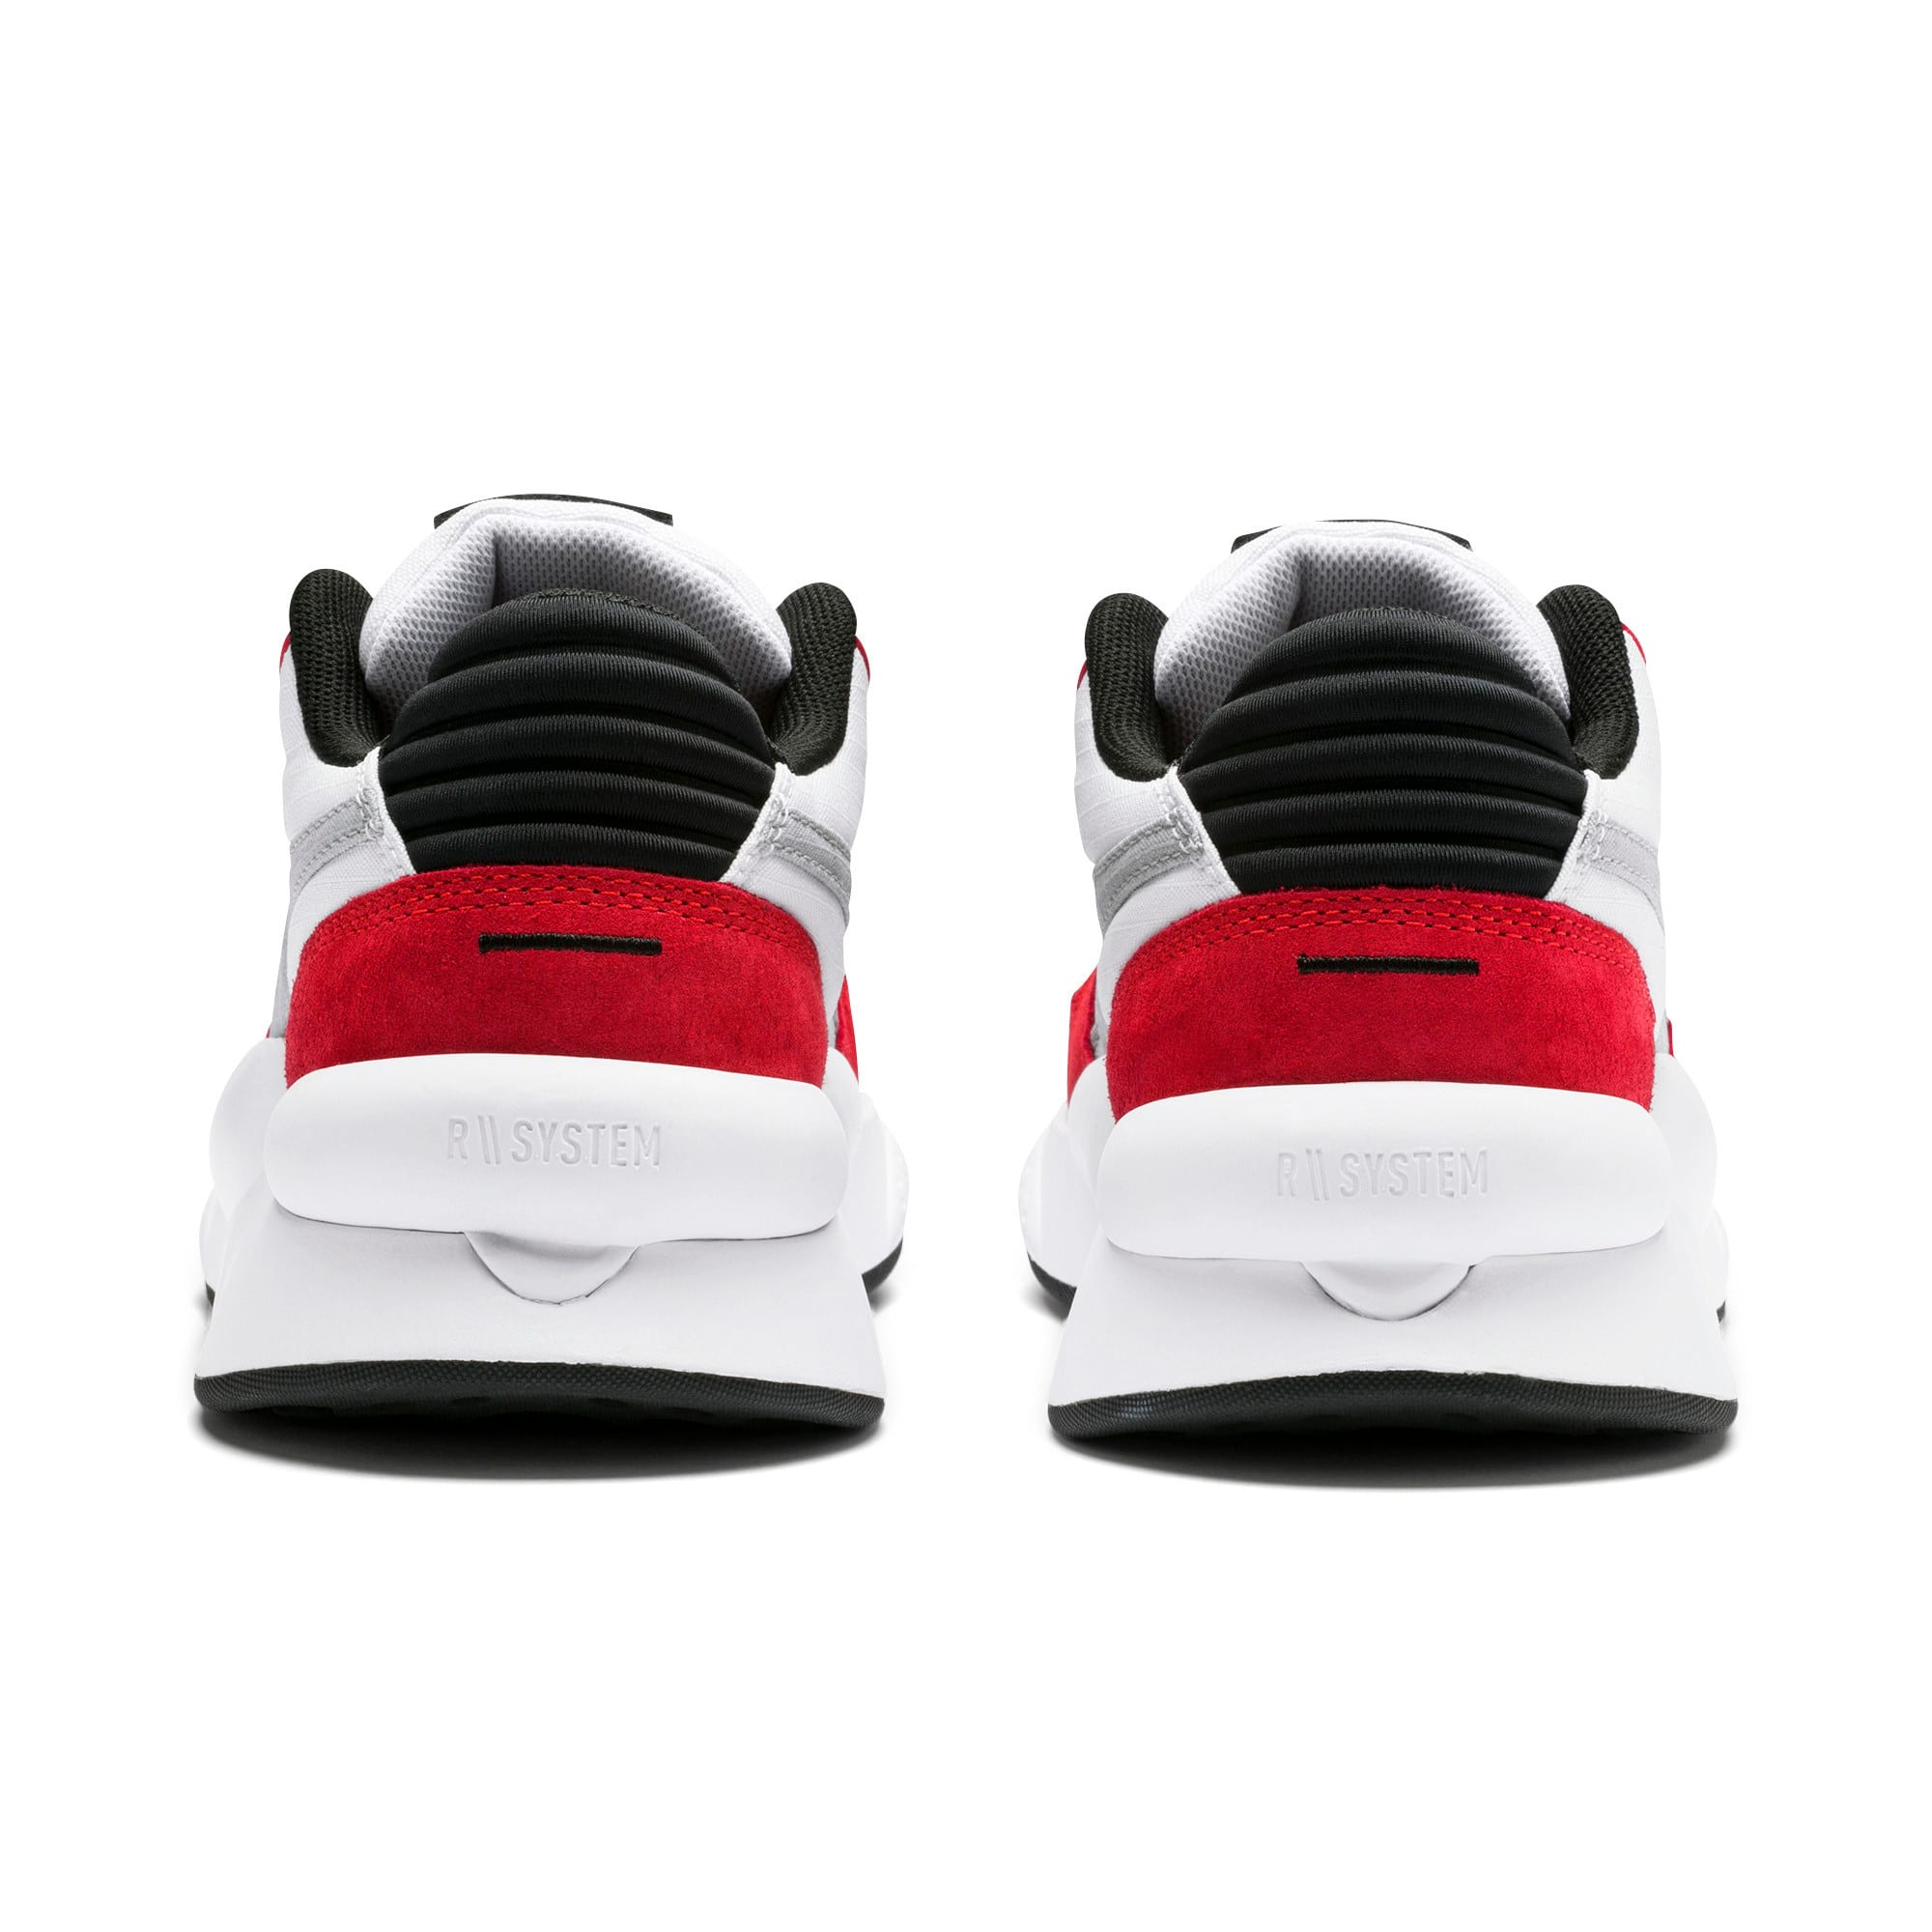 Thumbnail 3 of RS 9.8 Space Youth Sneaker, Puma White-High Risk Red, medium